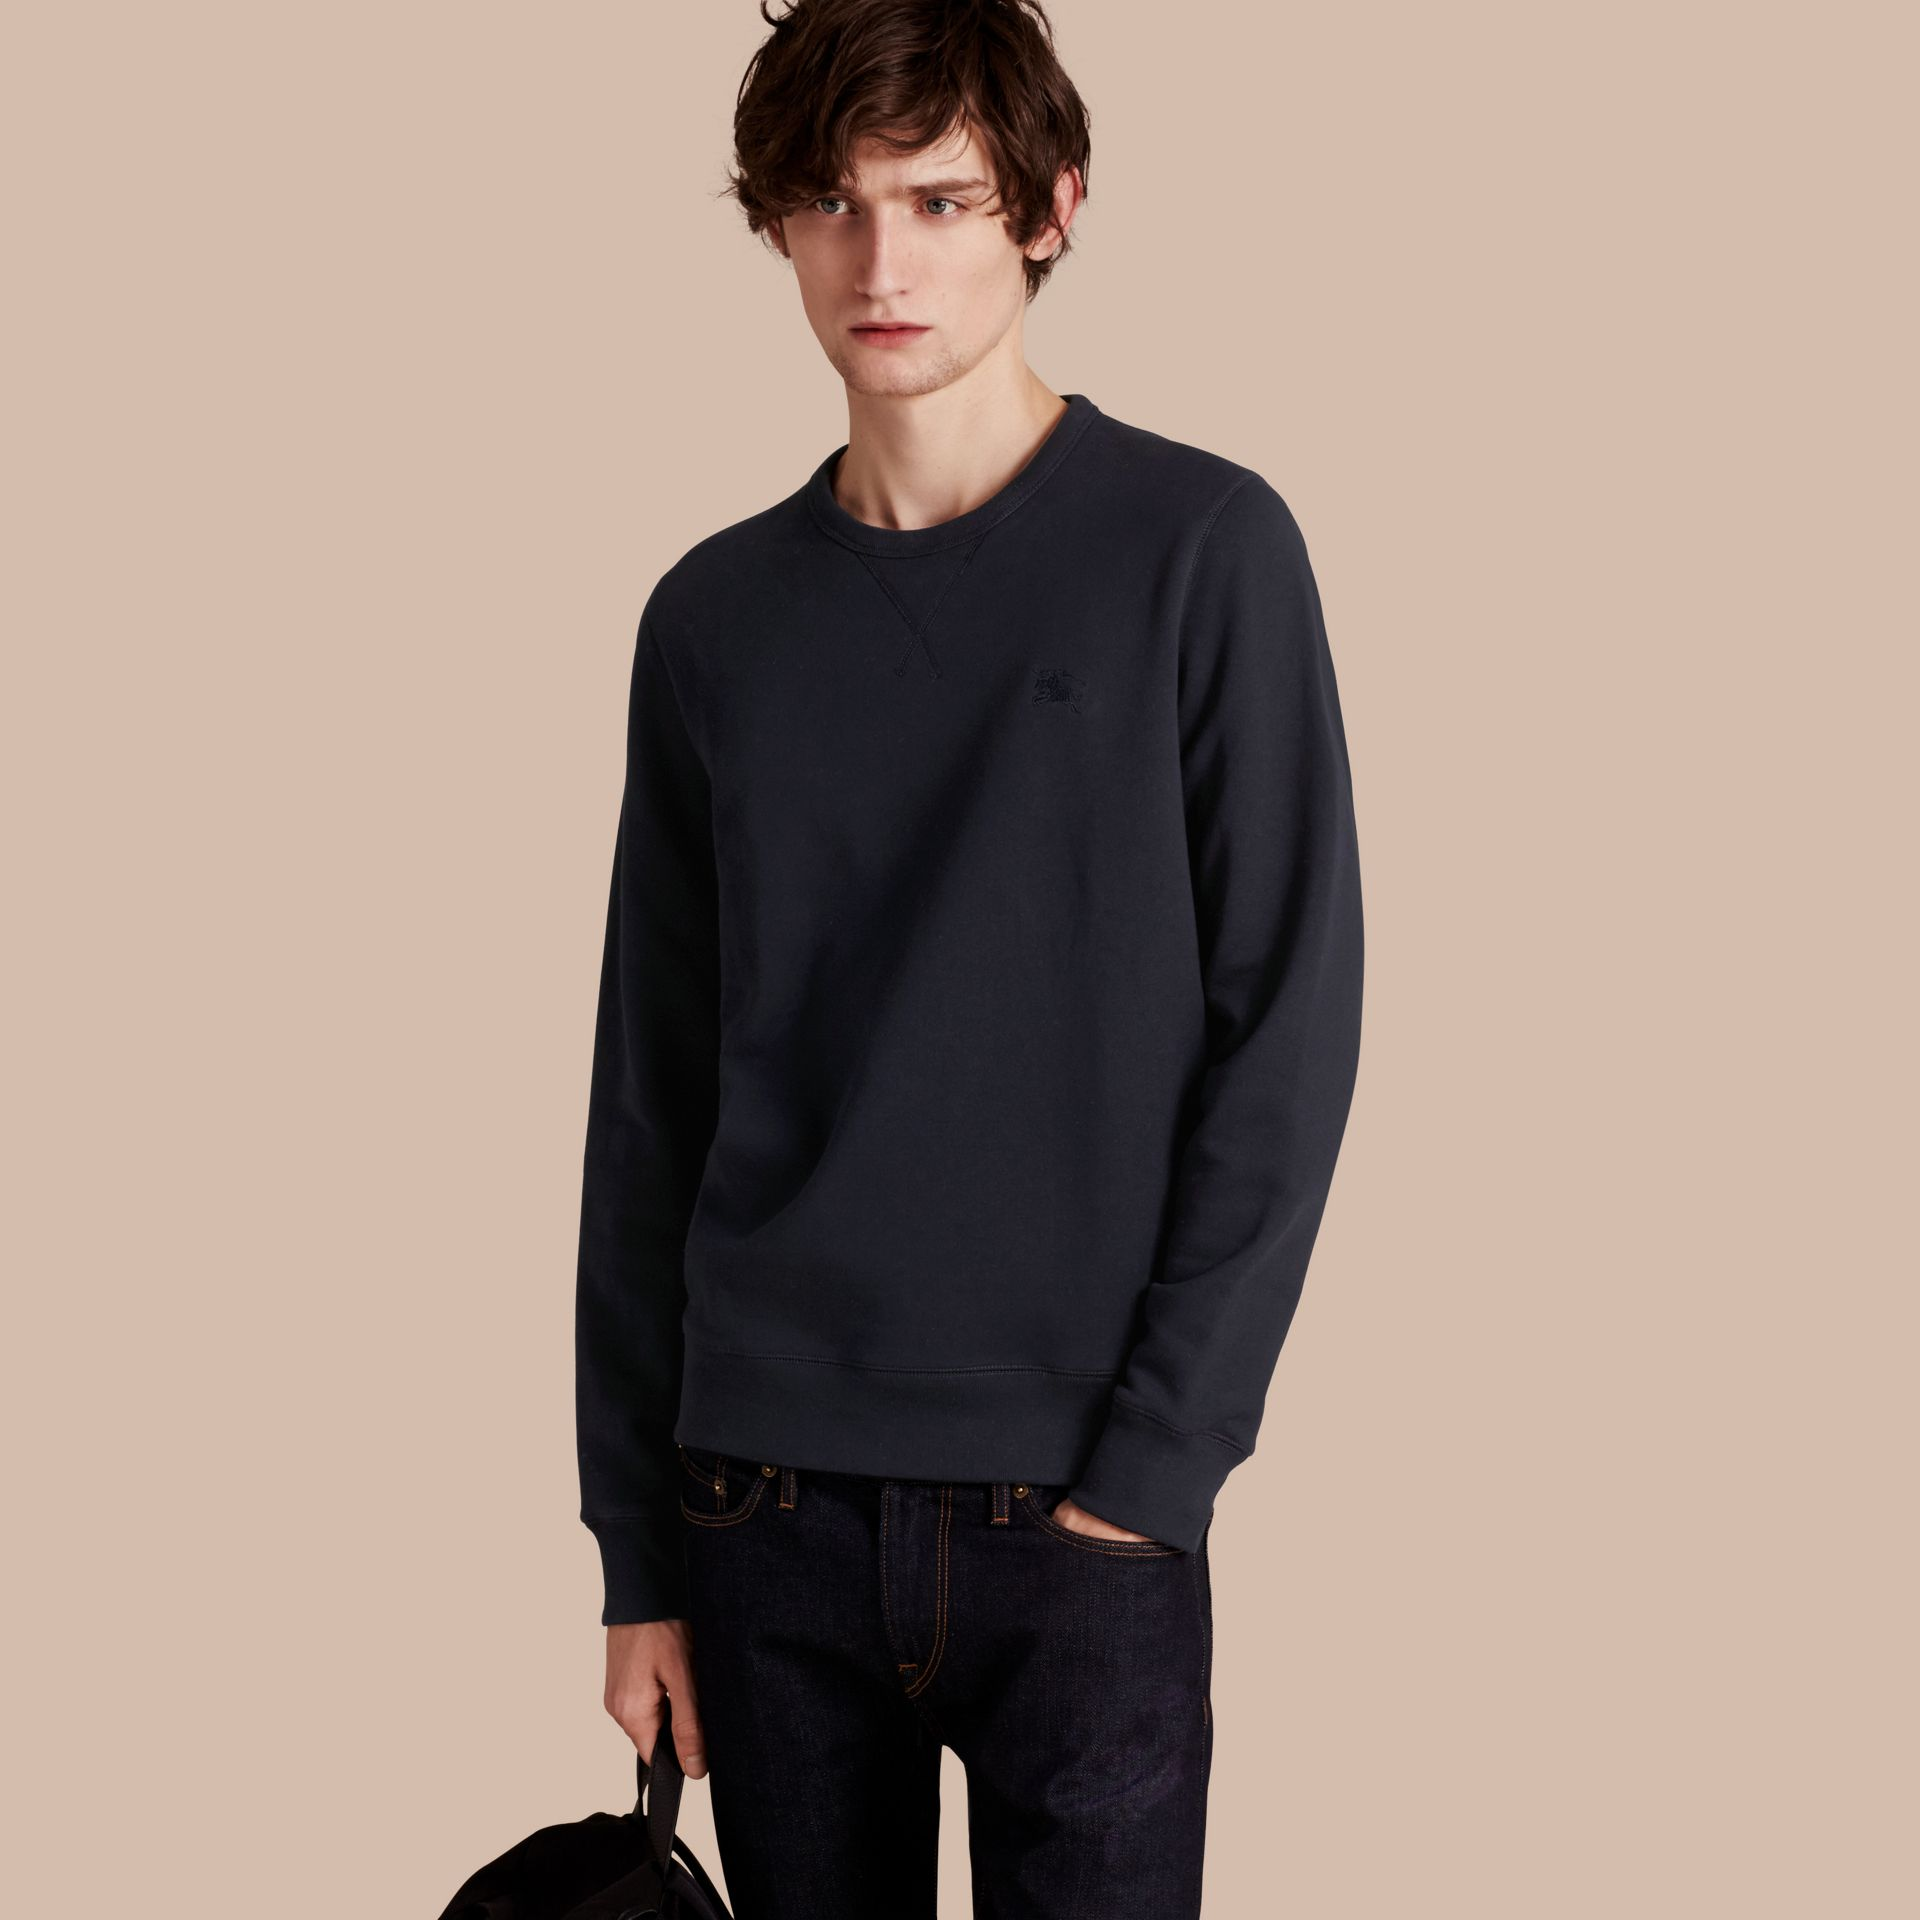 Navy Cotton Blend Jersey Sweatshirt Navy - gallery image 1